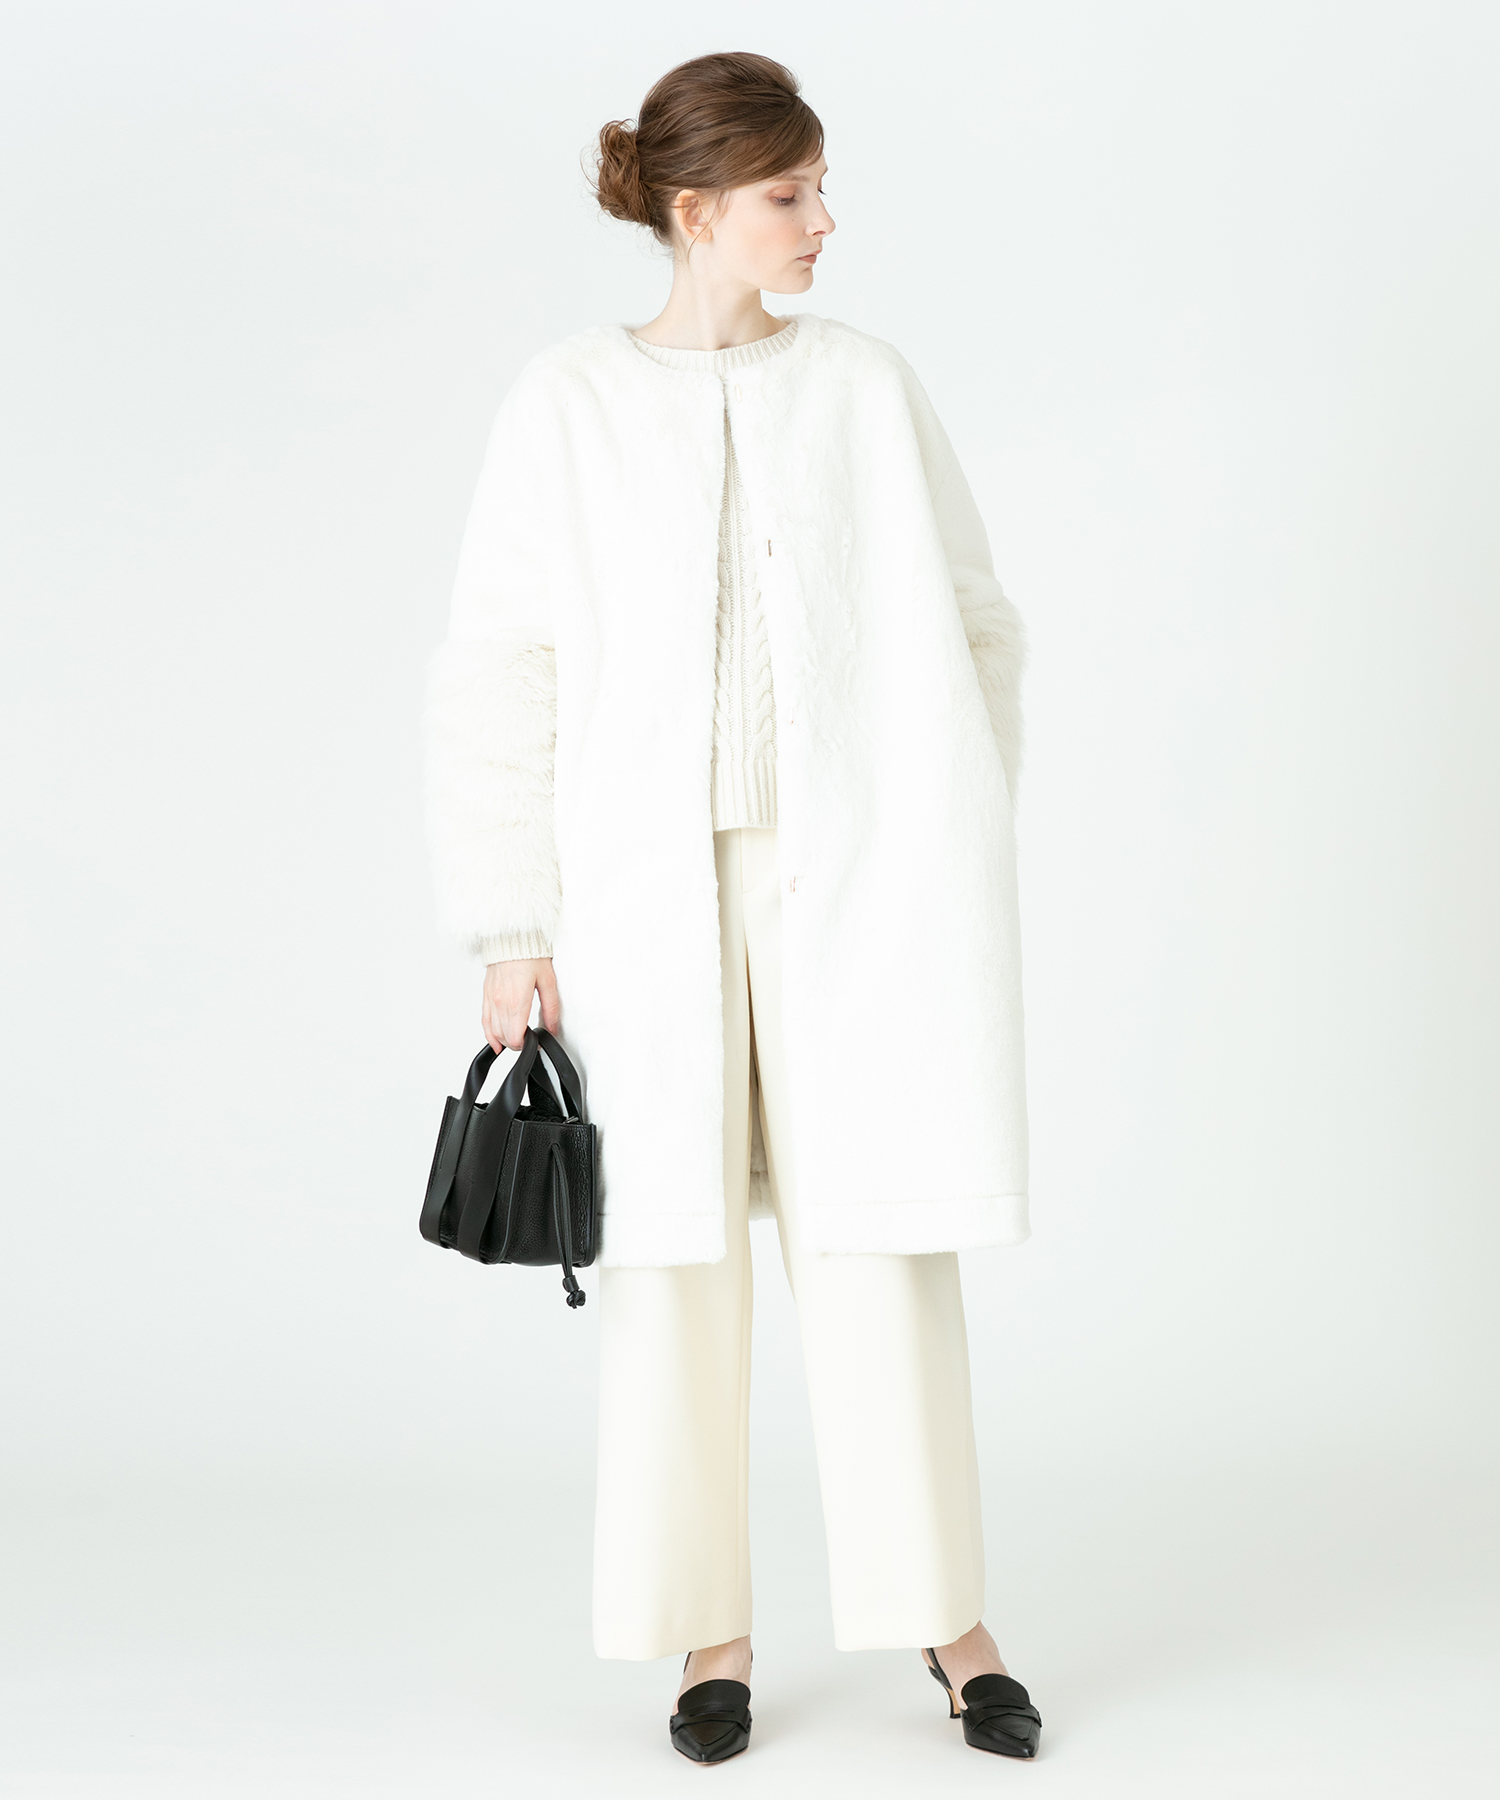 【LOULOU WILLOUGHBY】エコファーノーカラーコート